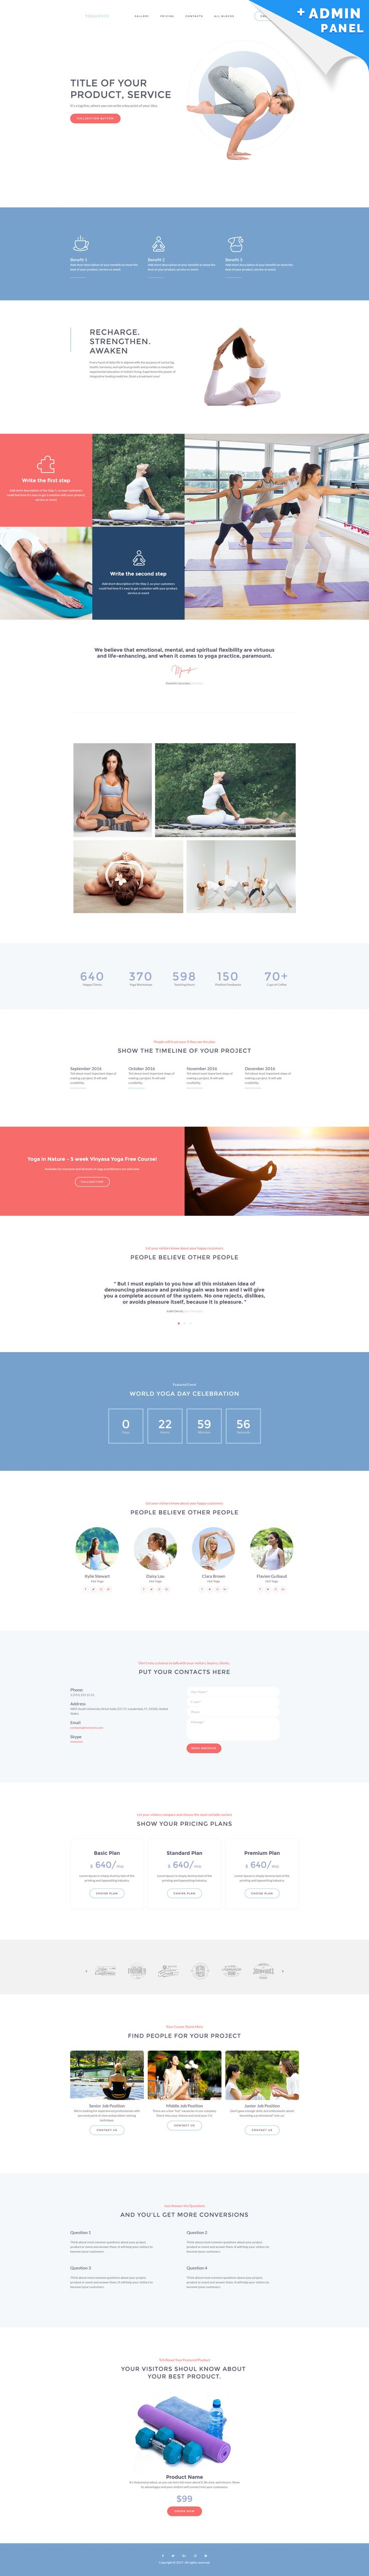 Yoga Responsive Landing Page Template #59246 - https://www.templatemonster.com/landing-page-template/responsive-landing-page-template-59246.html